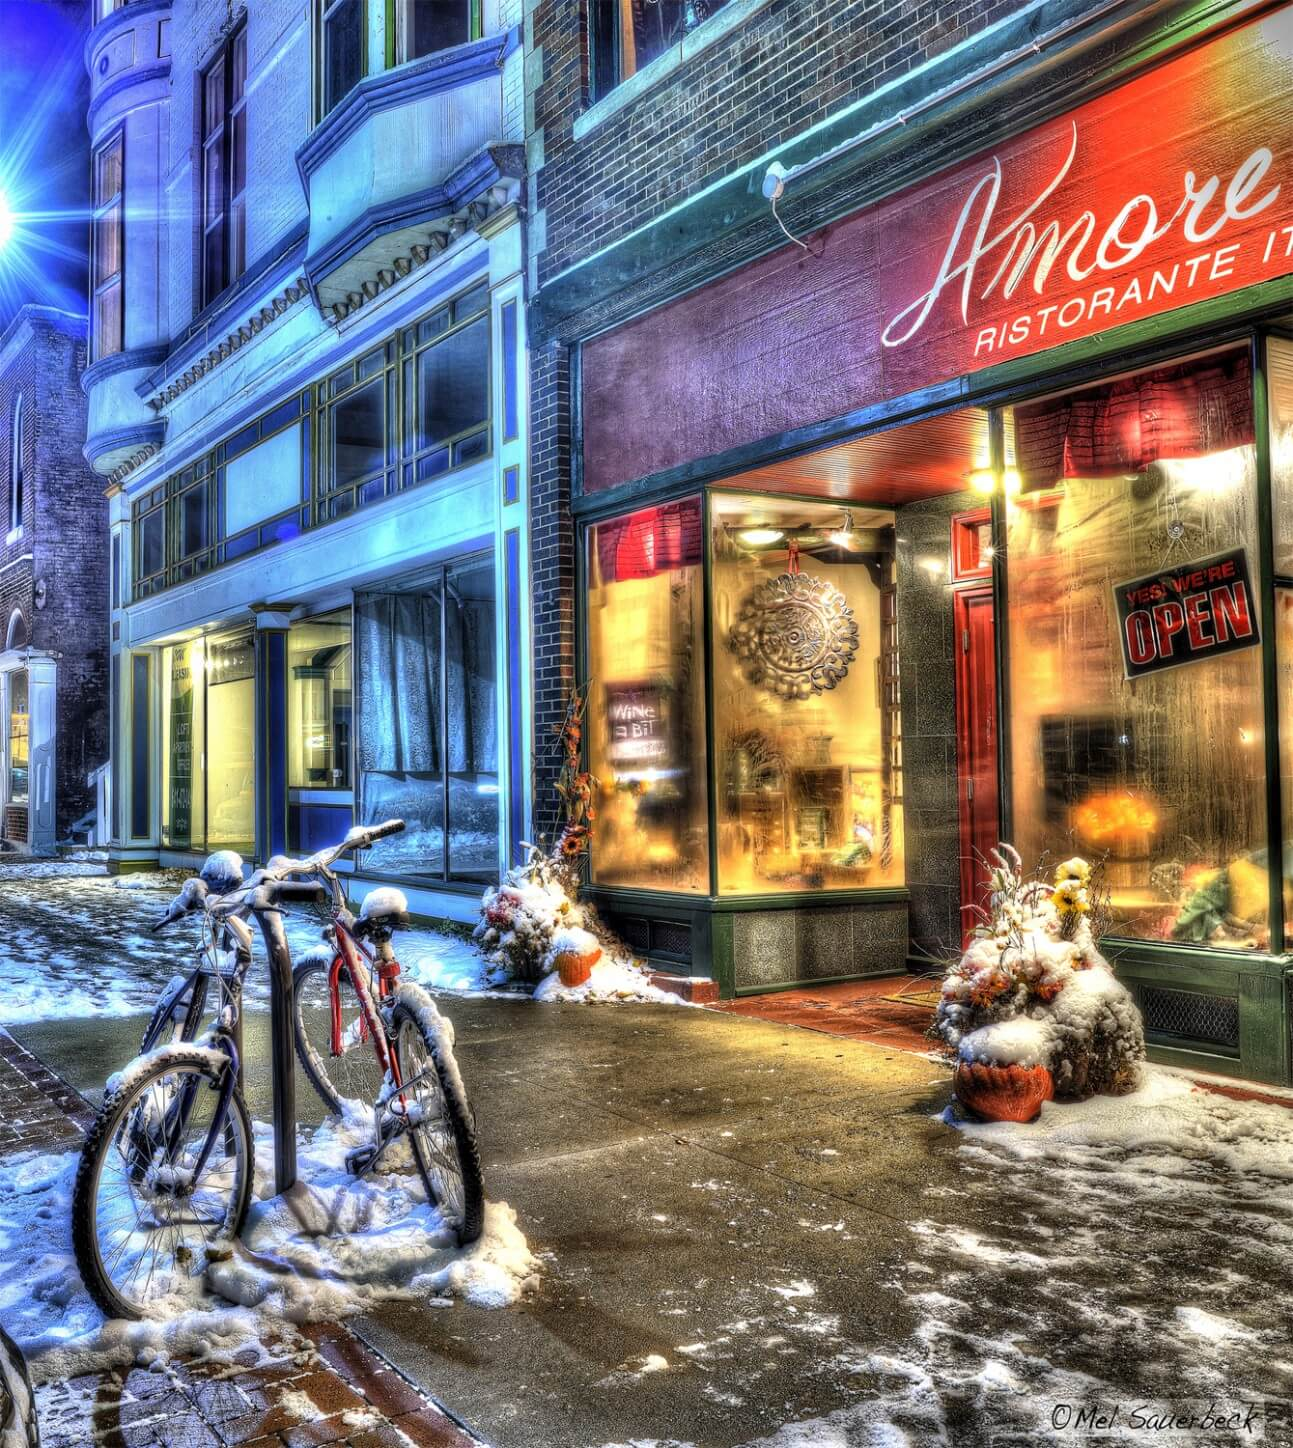 Winter scene, Amore Mio restaurant